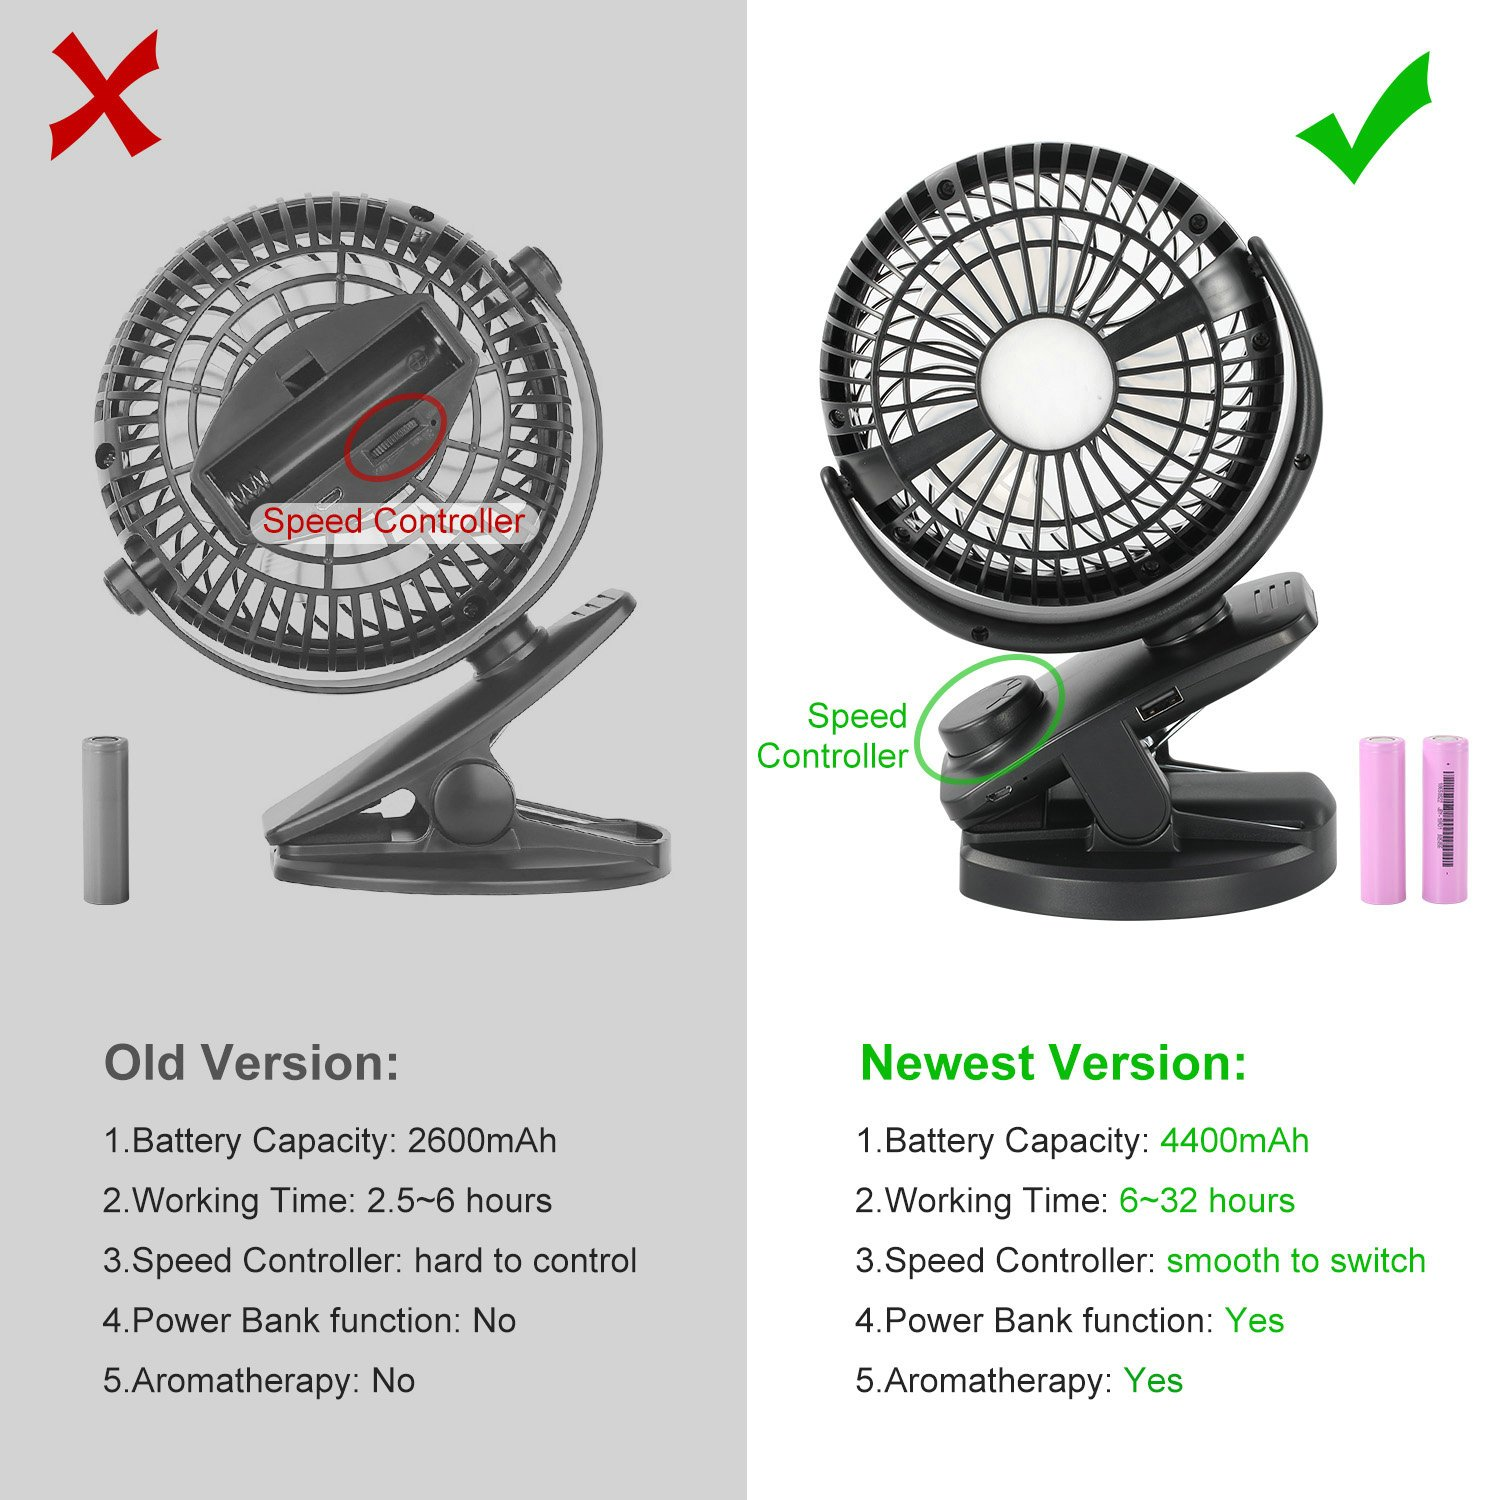 COMLIFE Portable Fan F150, USB Desk Fan with Rechargeable 4400 mAh Battery,Mini Clip on Fan with Powerbank &Aroma Diffuser Function,Stepless Speeds, Ideal for Stroller, Camping, Office, Outdoor,Travel by COMLIFE (Image #2)